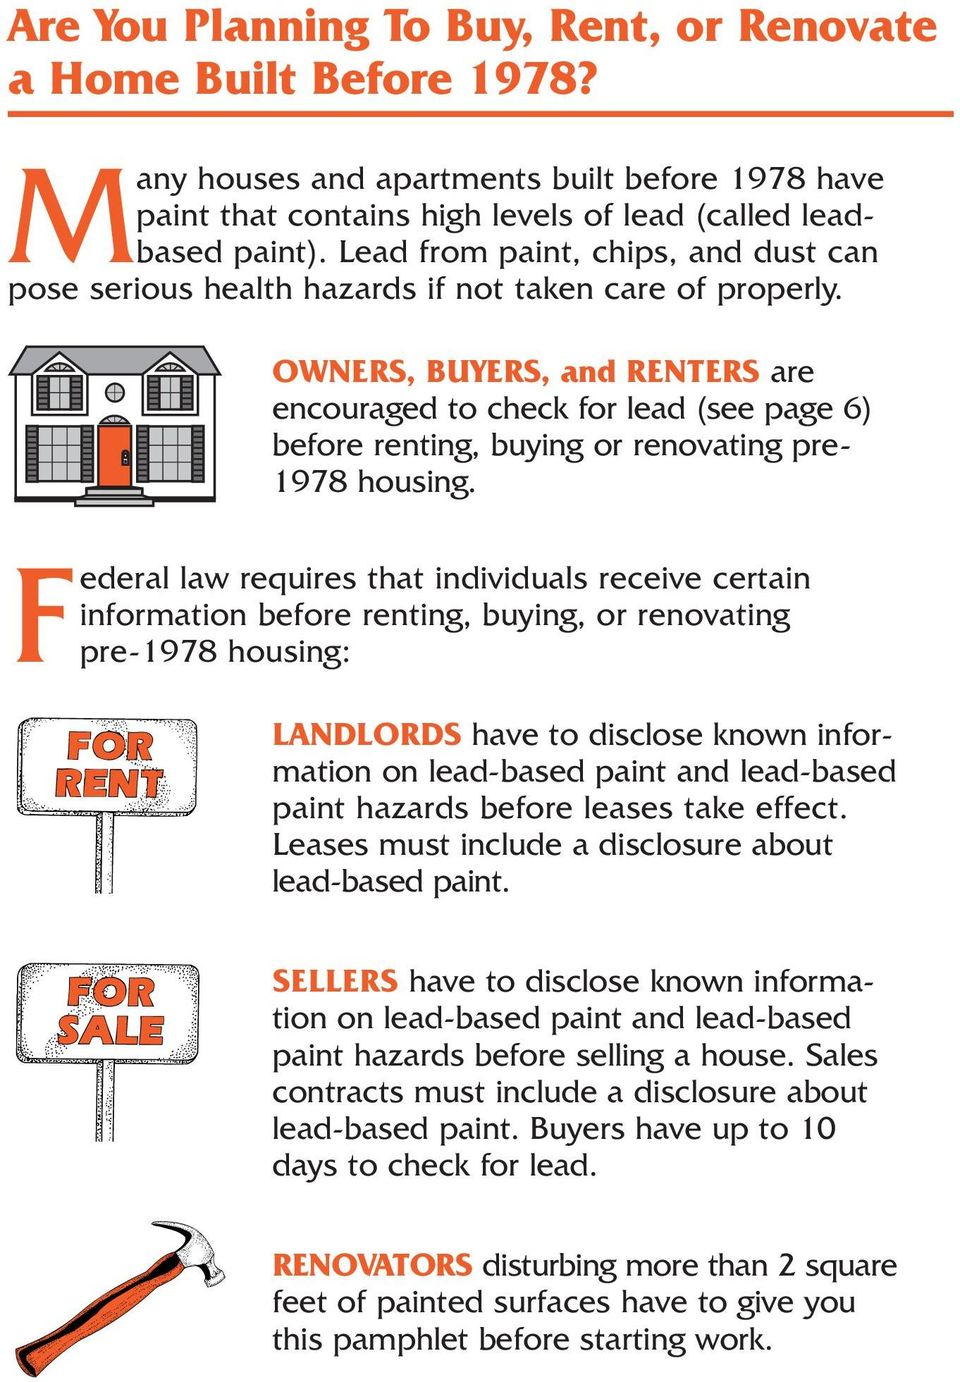 OWNERS, BUYERS, and RENTERS are encouraged to check for lead (see page 6) before renting, buying or renovating pre- 1978 housing.